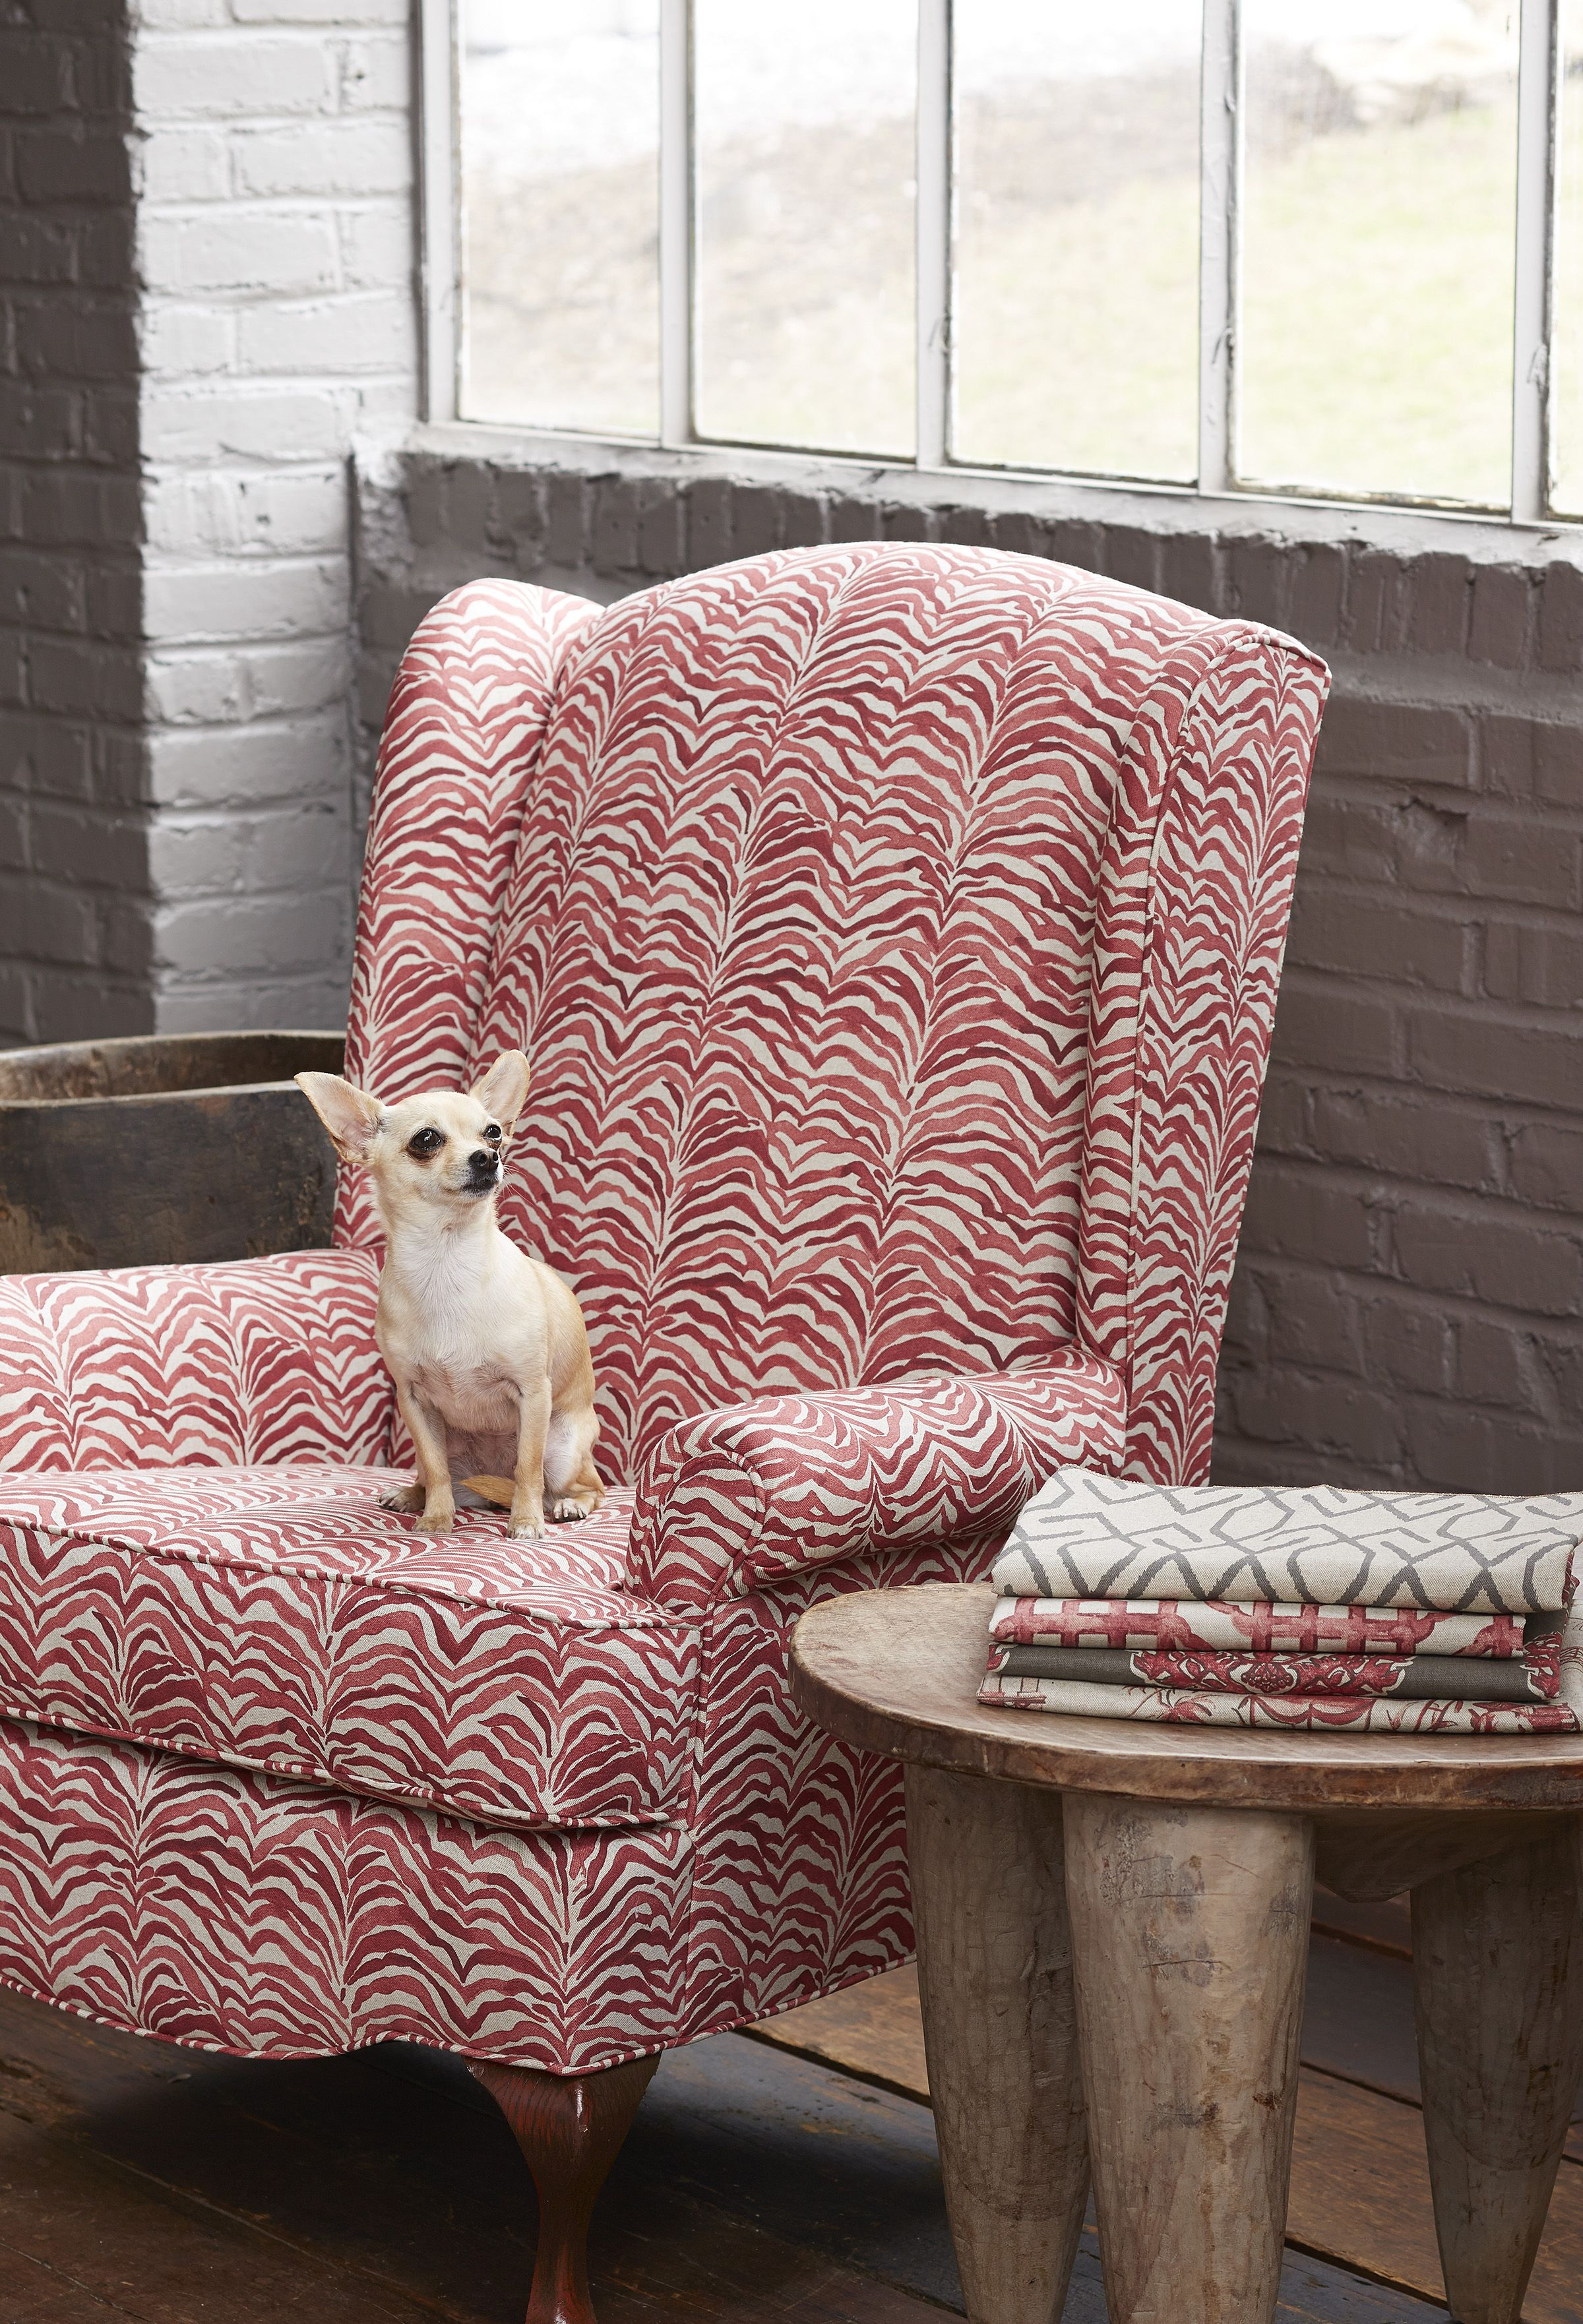 Lacefield Geranium Textile Collection   Serengeti Coral Upholstered Wing  Chair #coral #textiledesigner #madeinthesouth Www.lacefielddesigns.com